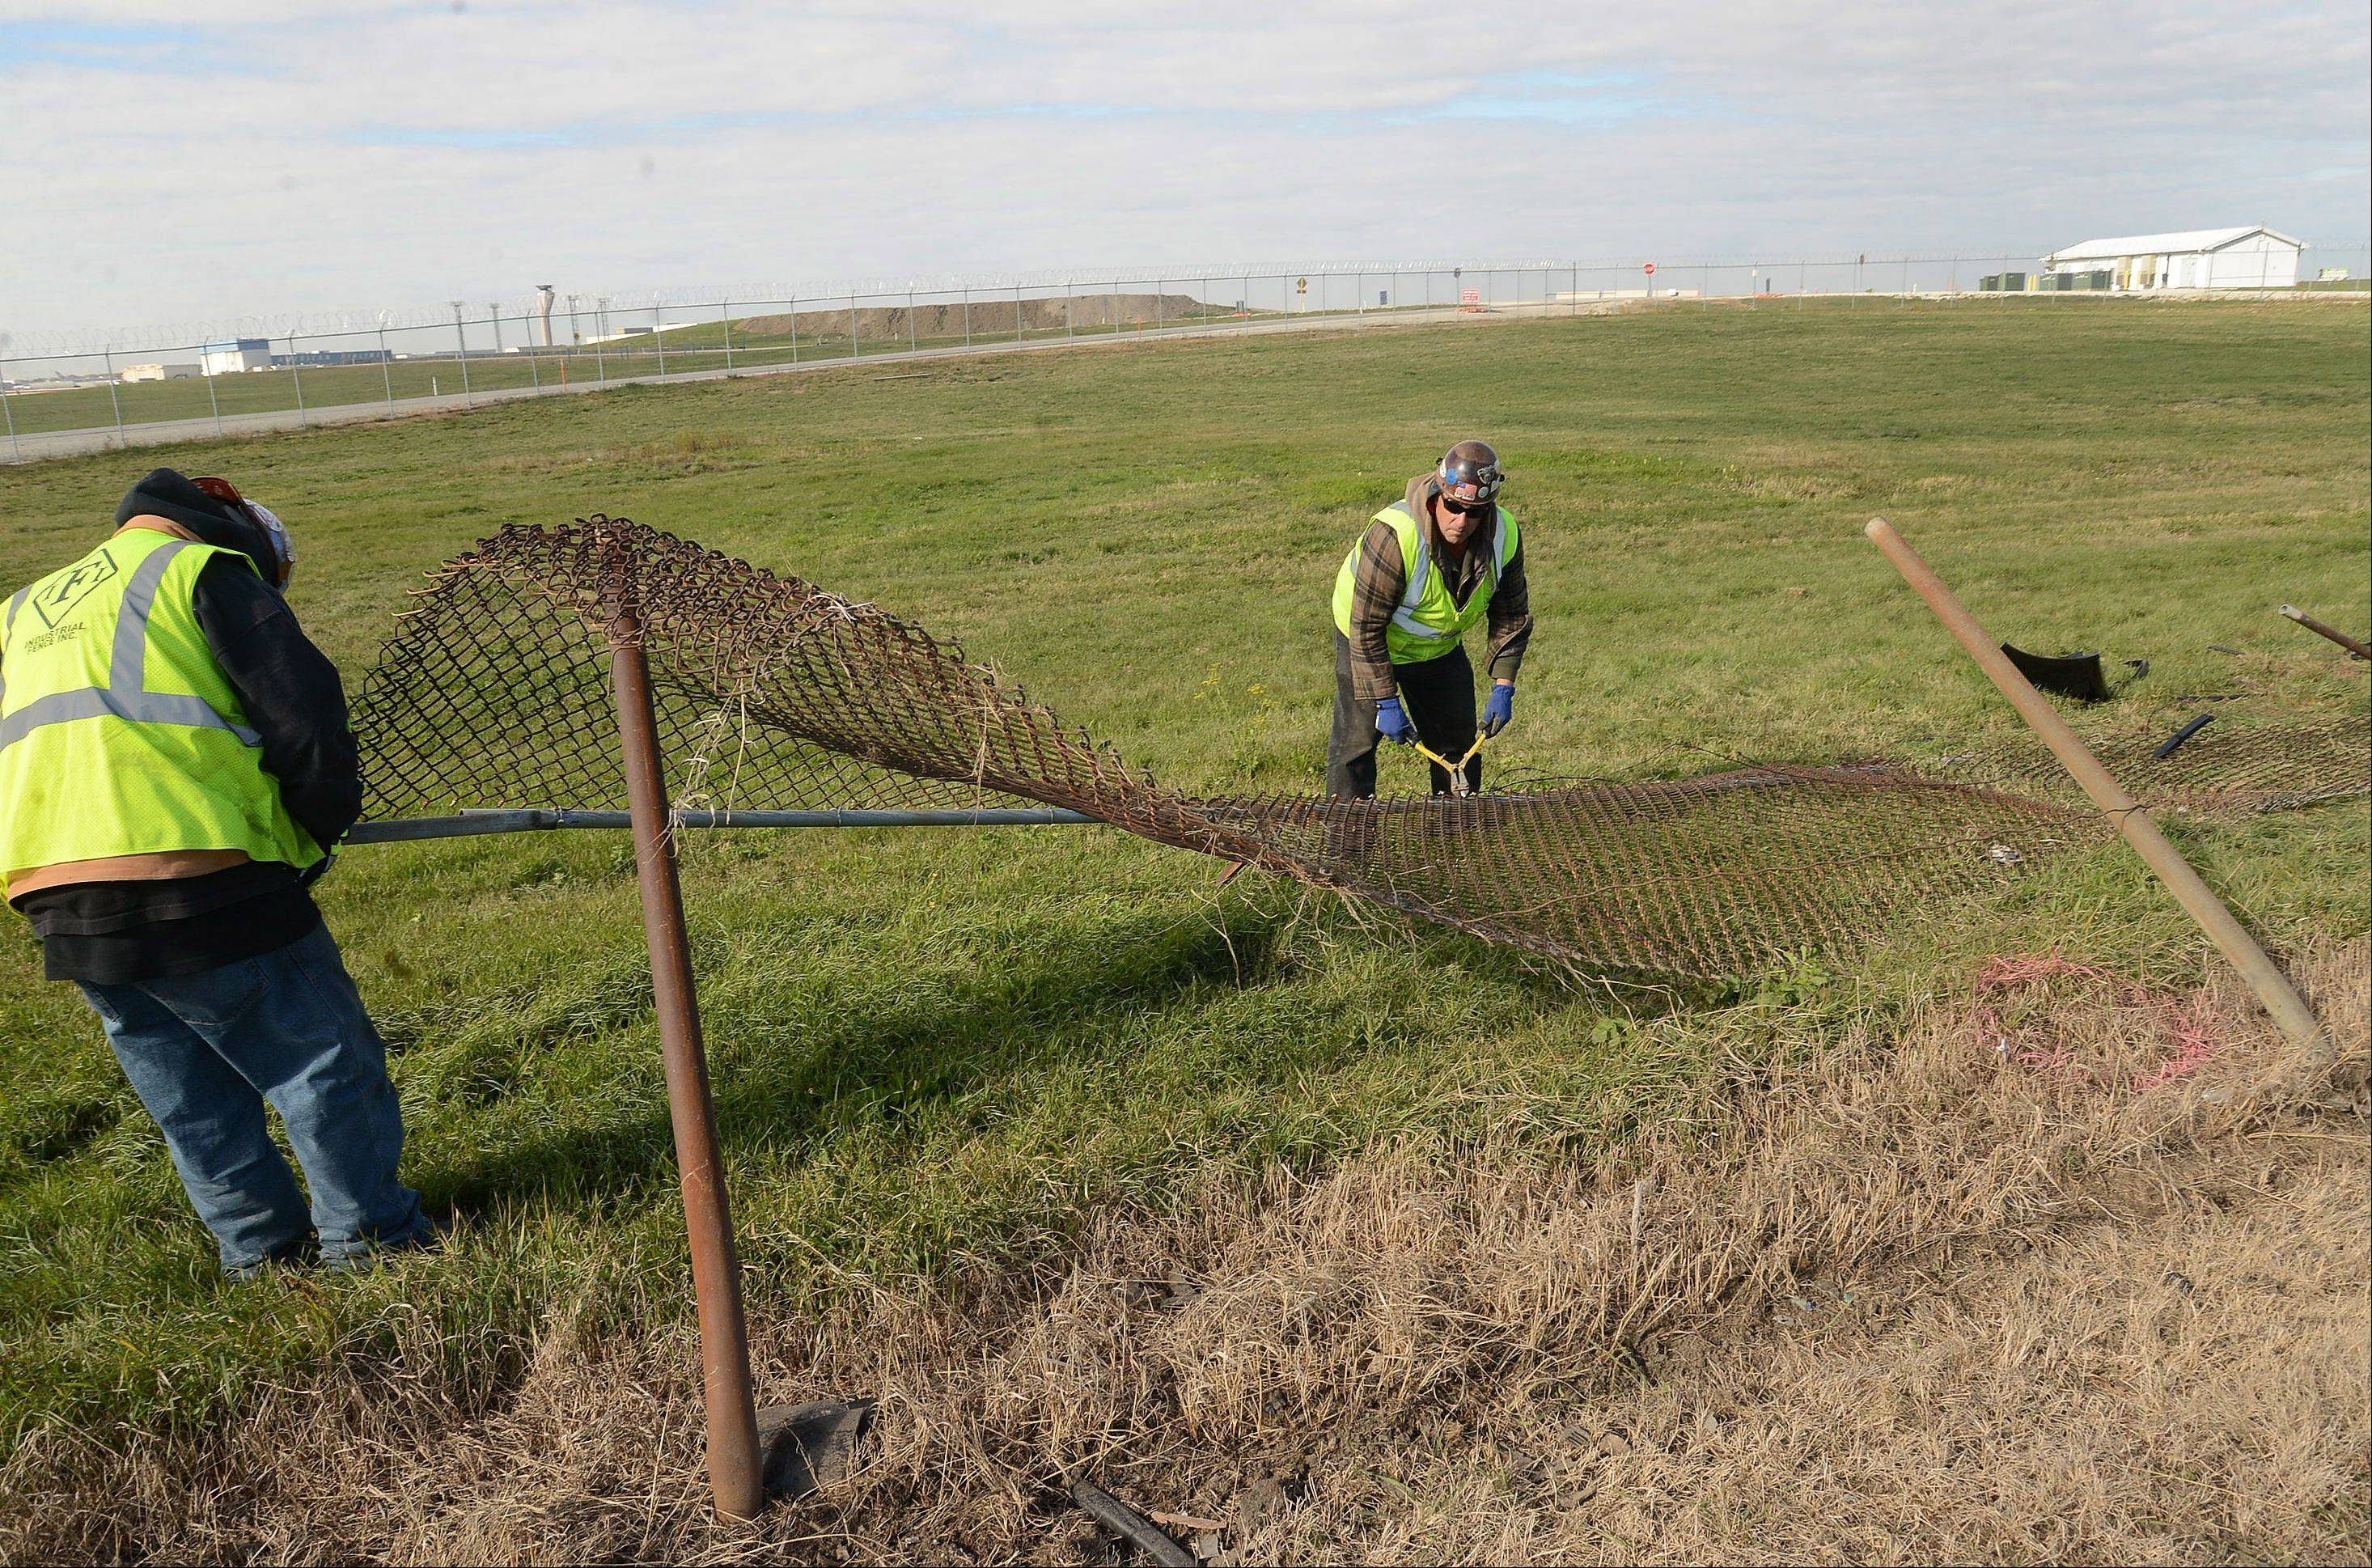 Ornamental iron workers Gerardo Campos, left, and Dan Morton begin to repair the fencing on Higgins Road between Mannheim and Touhy.